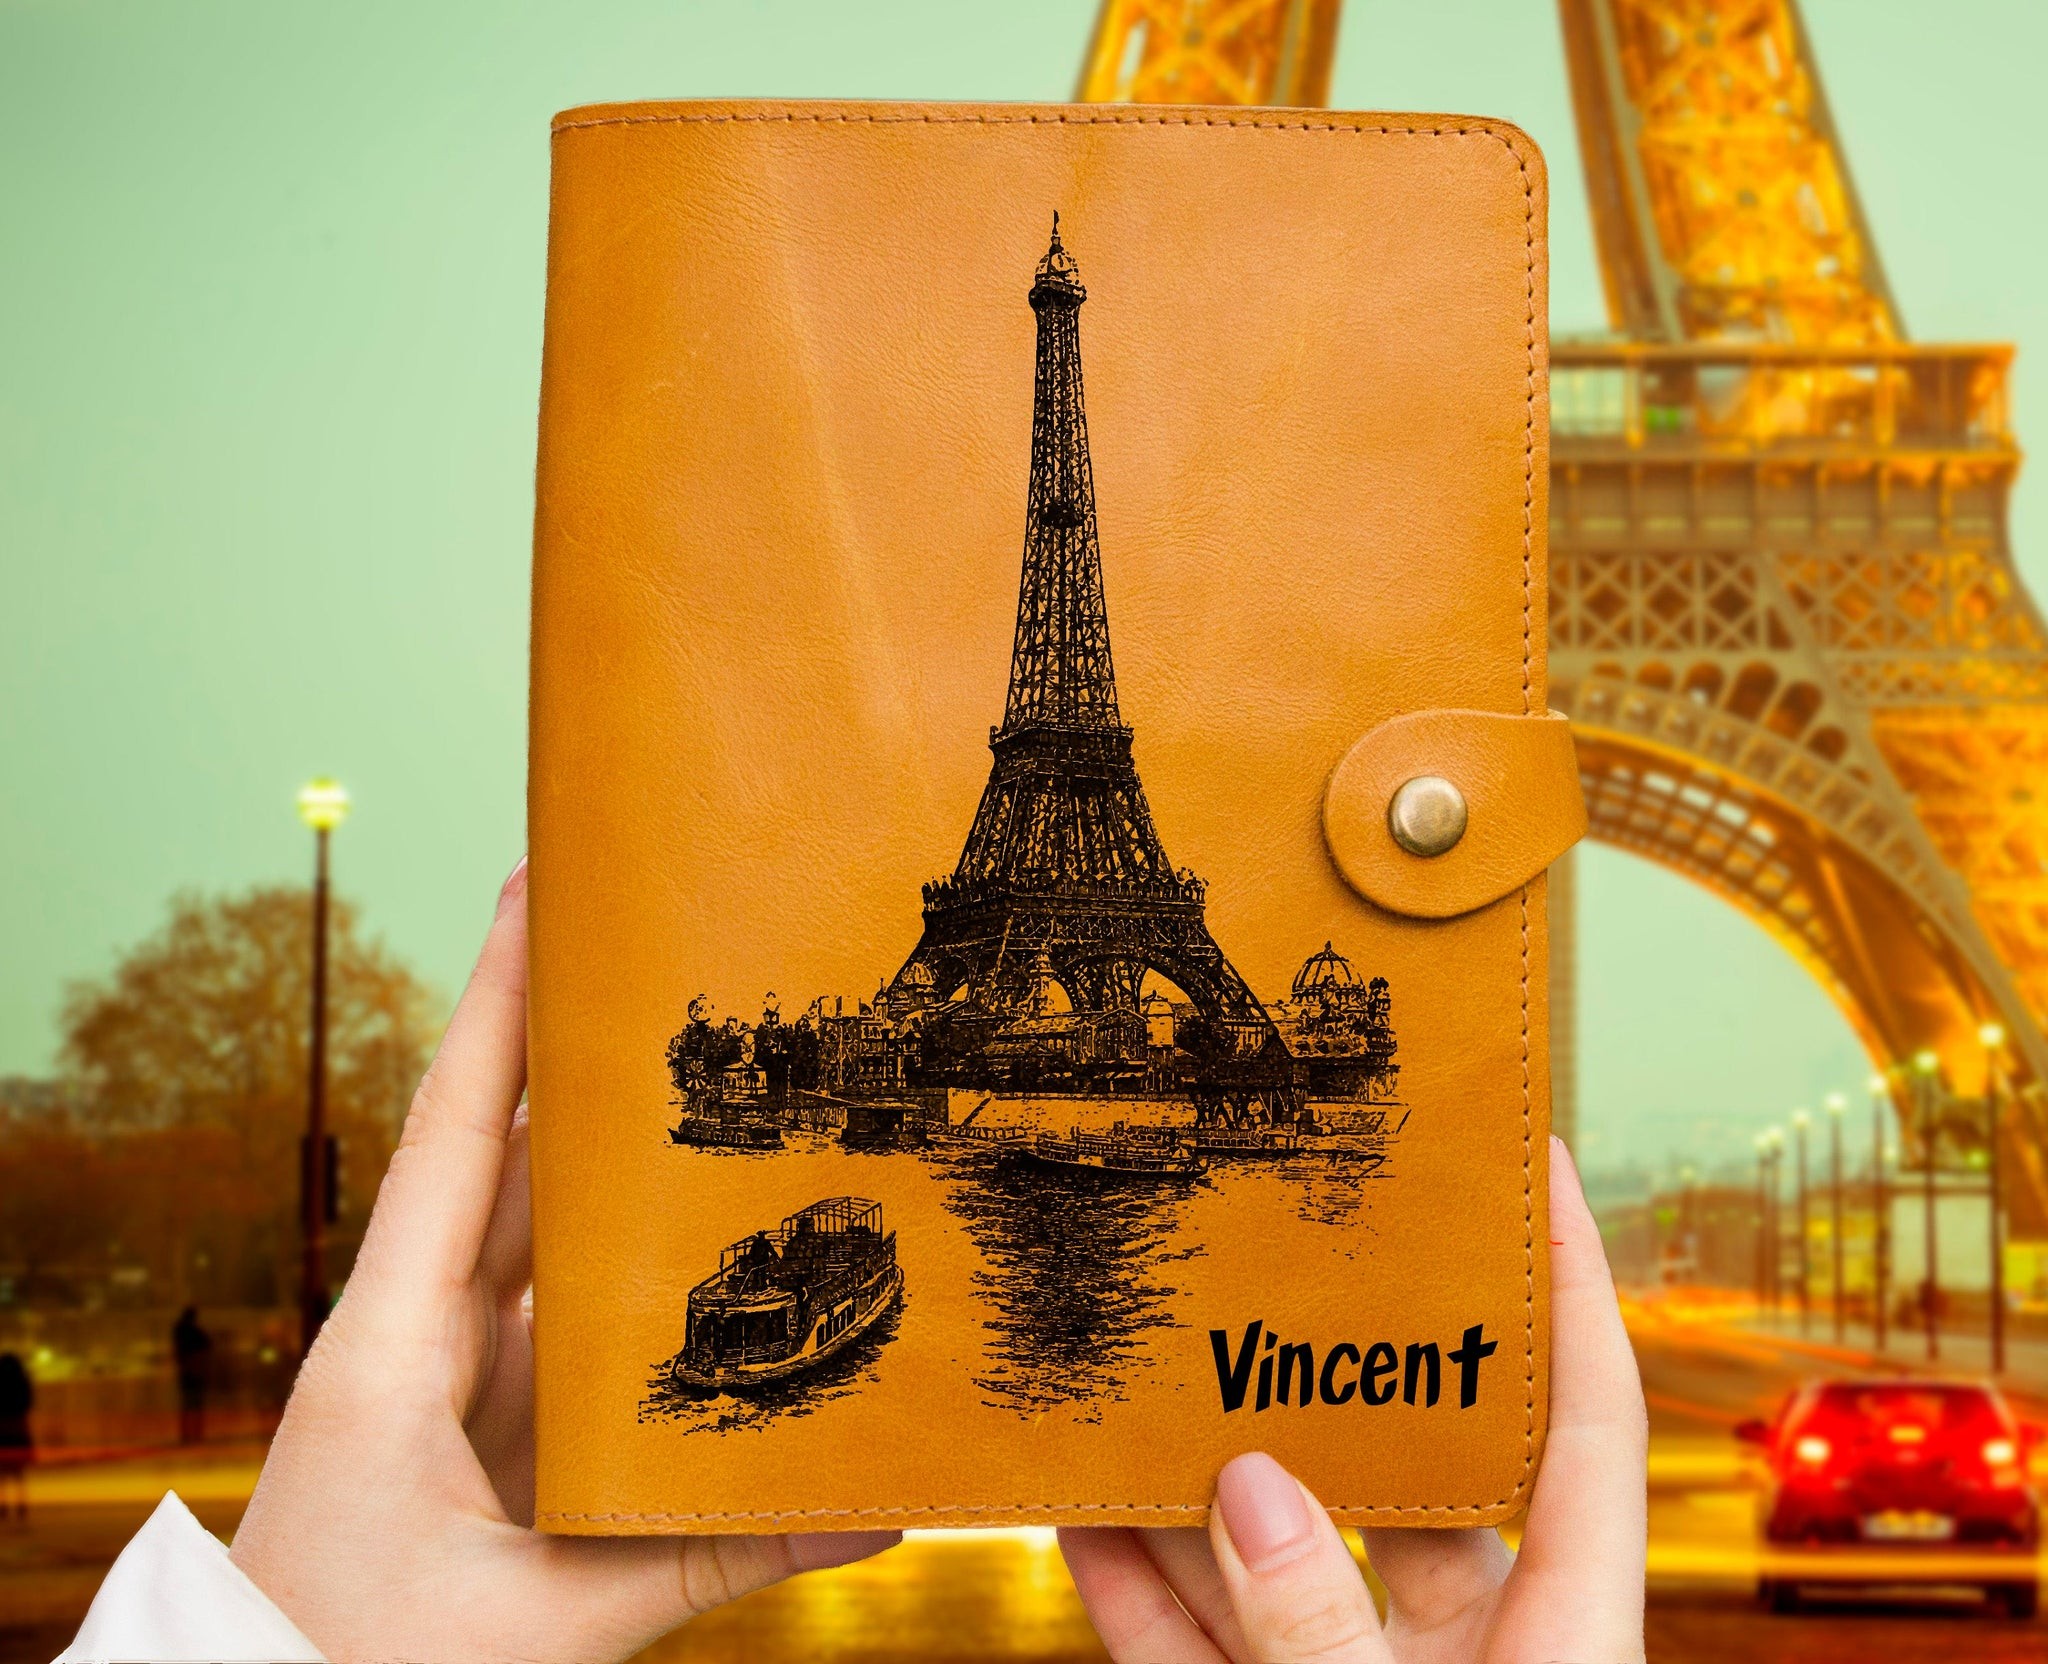 Personalized Paris Travelers Gift Engraved Leather Journal Organizer Leather Sketchbook Ochre A5 Size Italian Leather Notebook